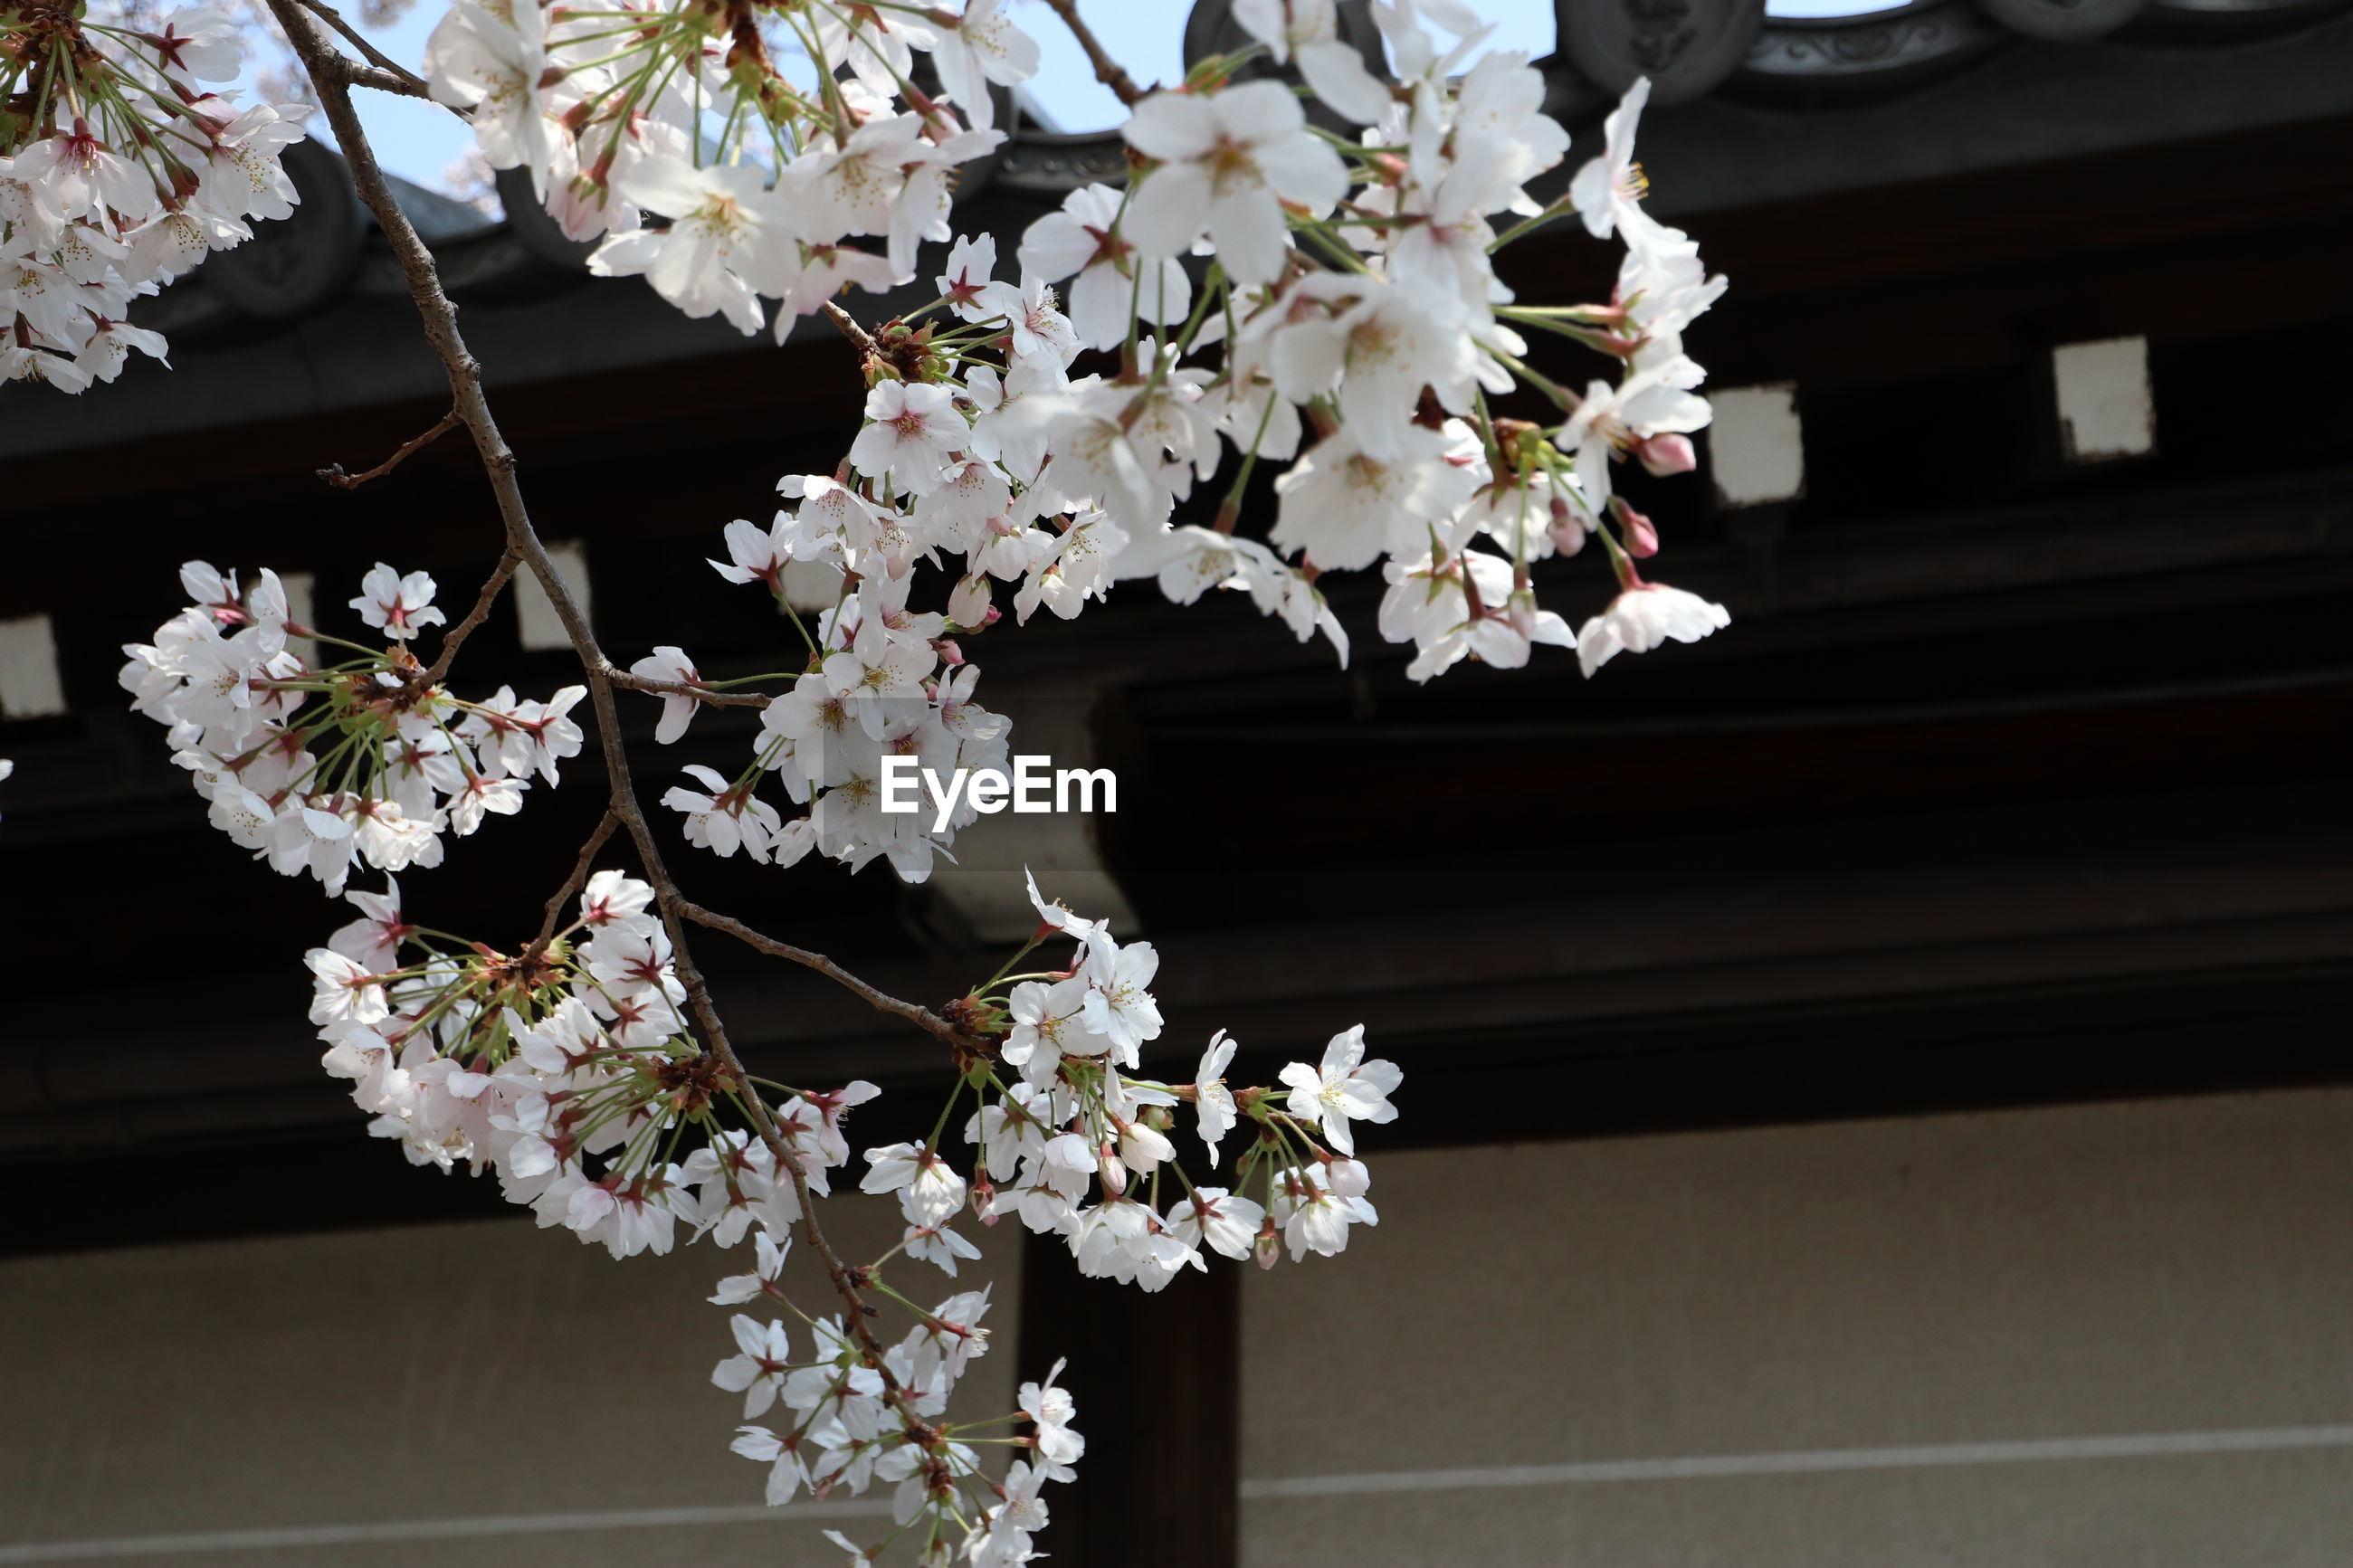 Low angle view of white flowering tree by building